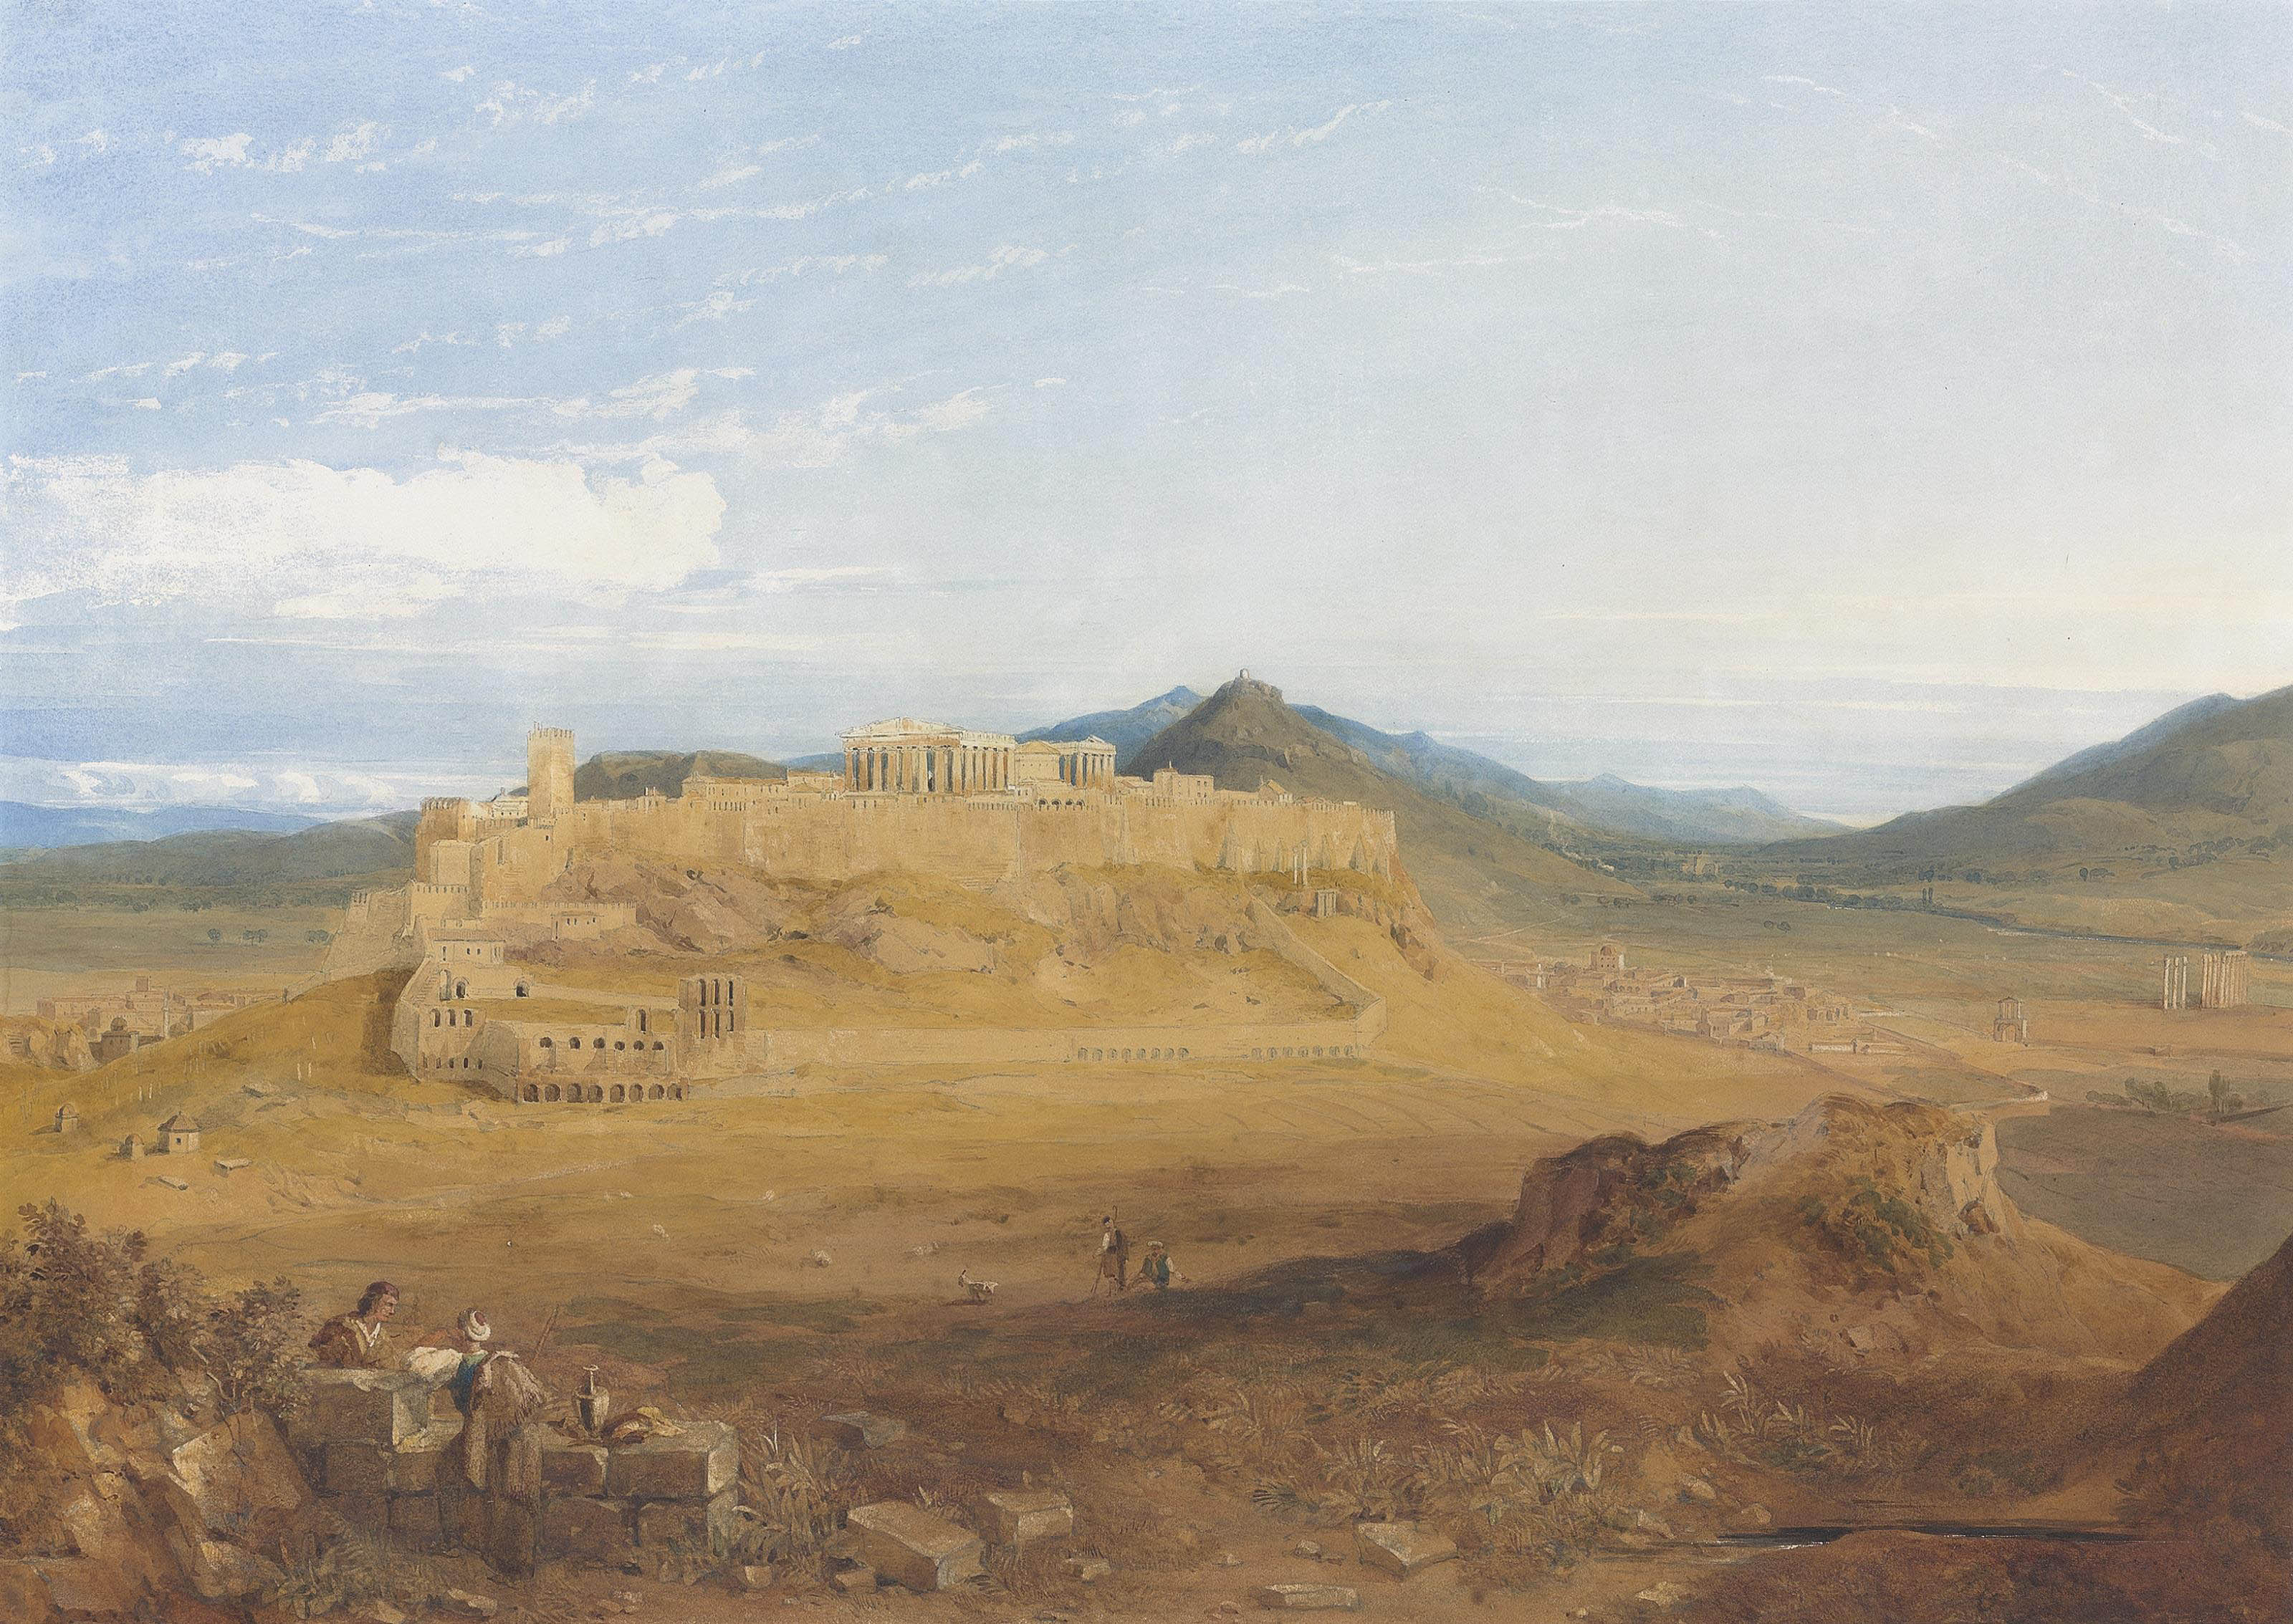 An extensive view of the Acropolis, Athens, with the Herodeion Atticon below